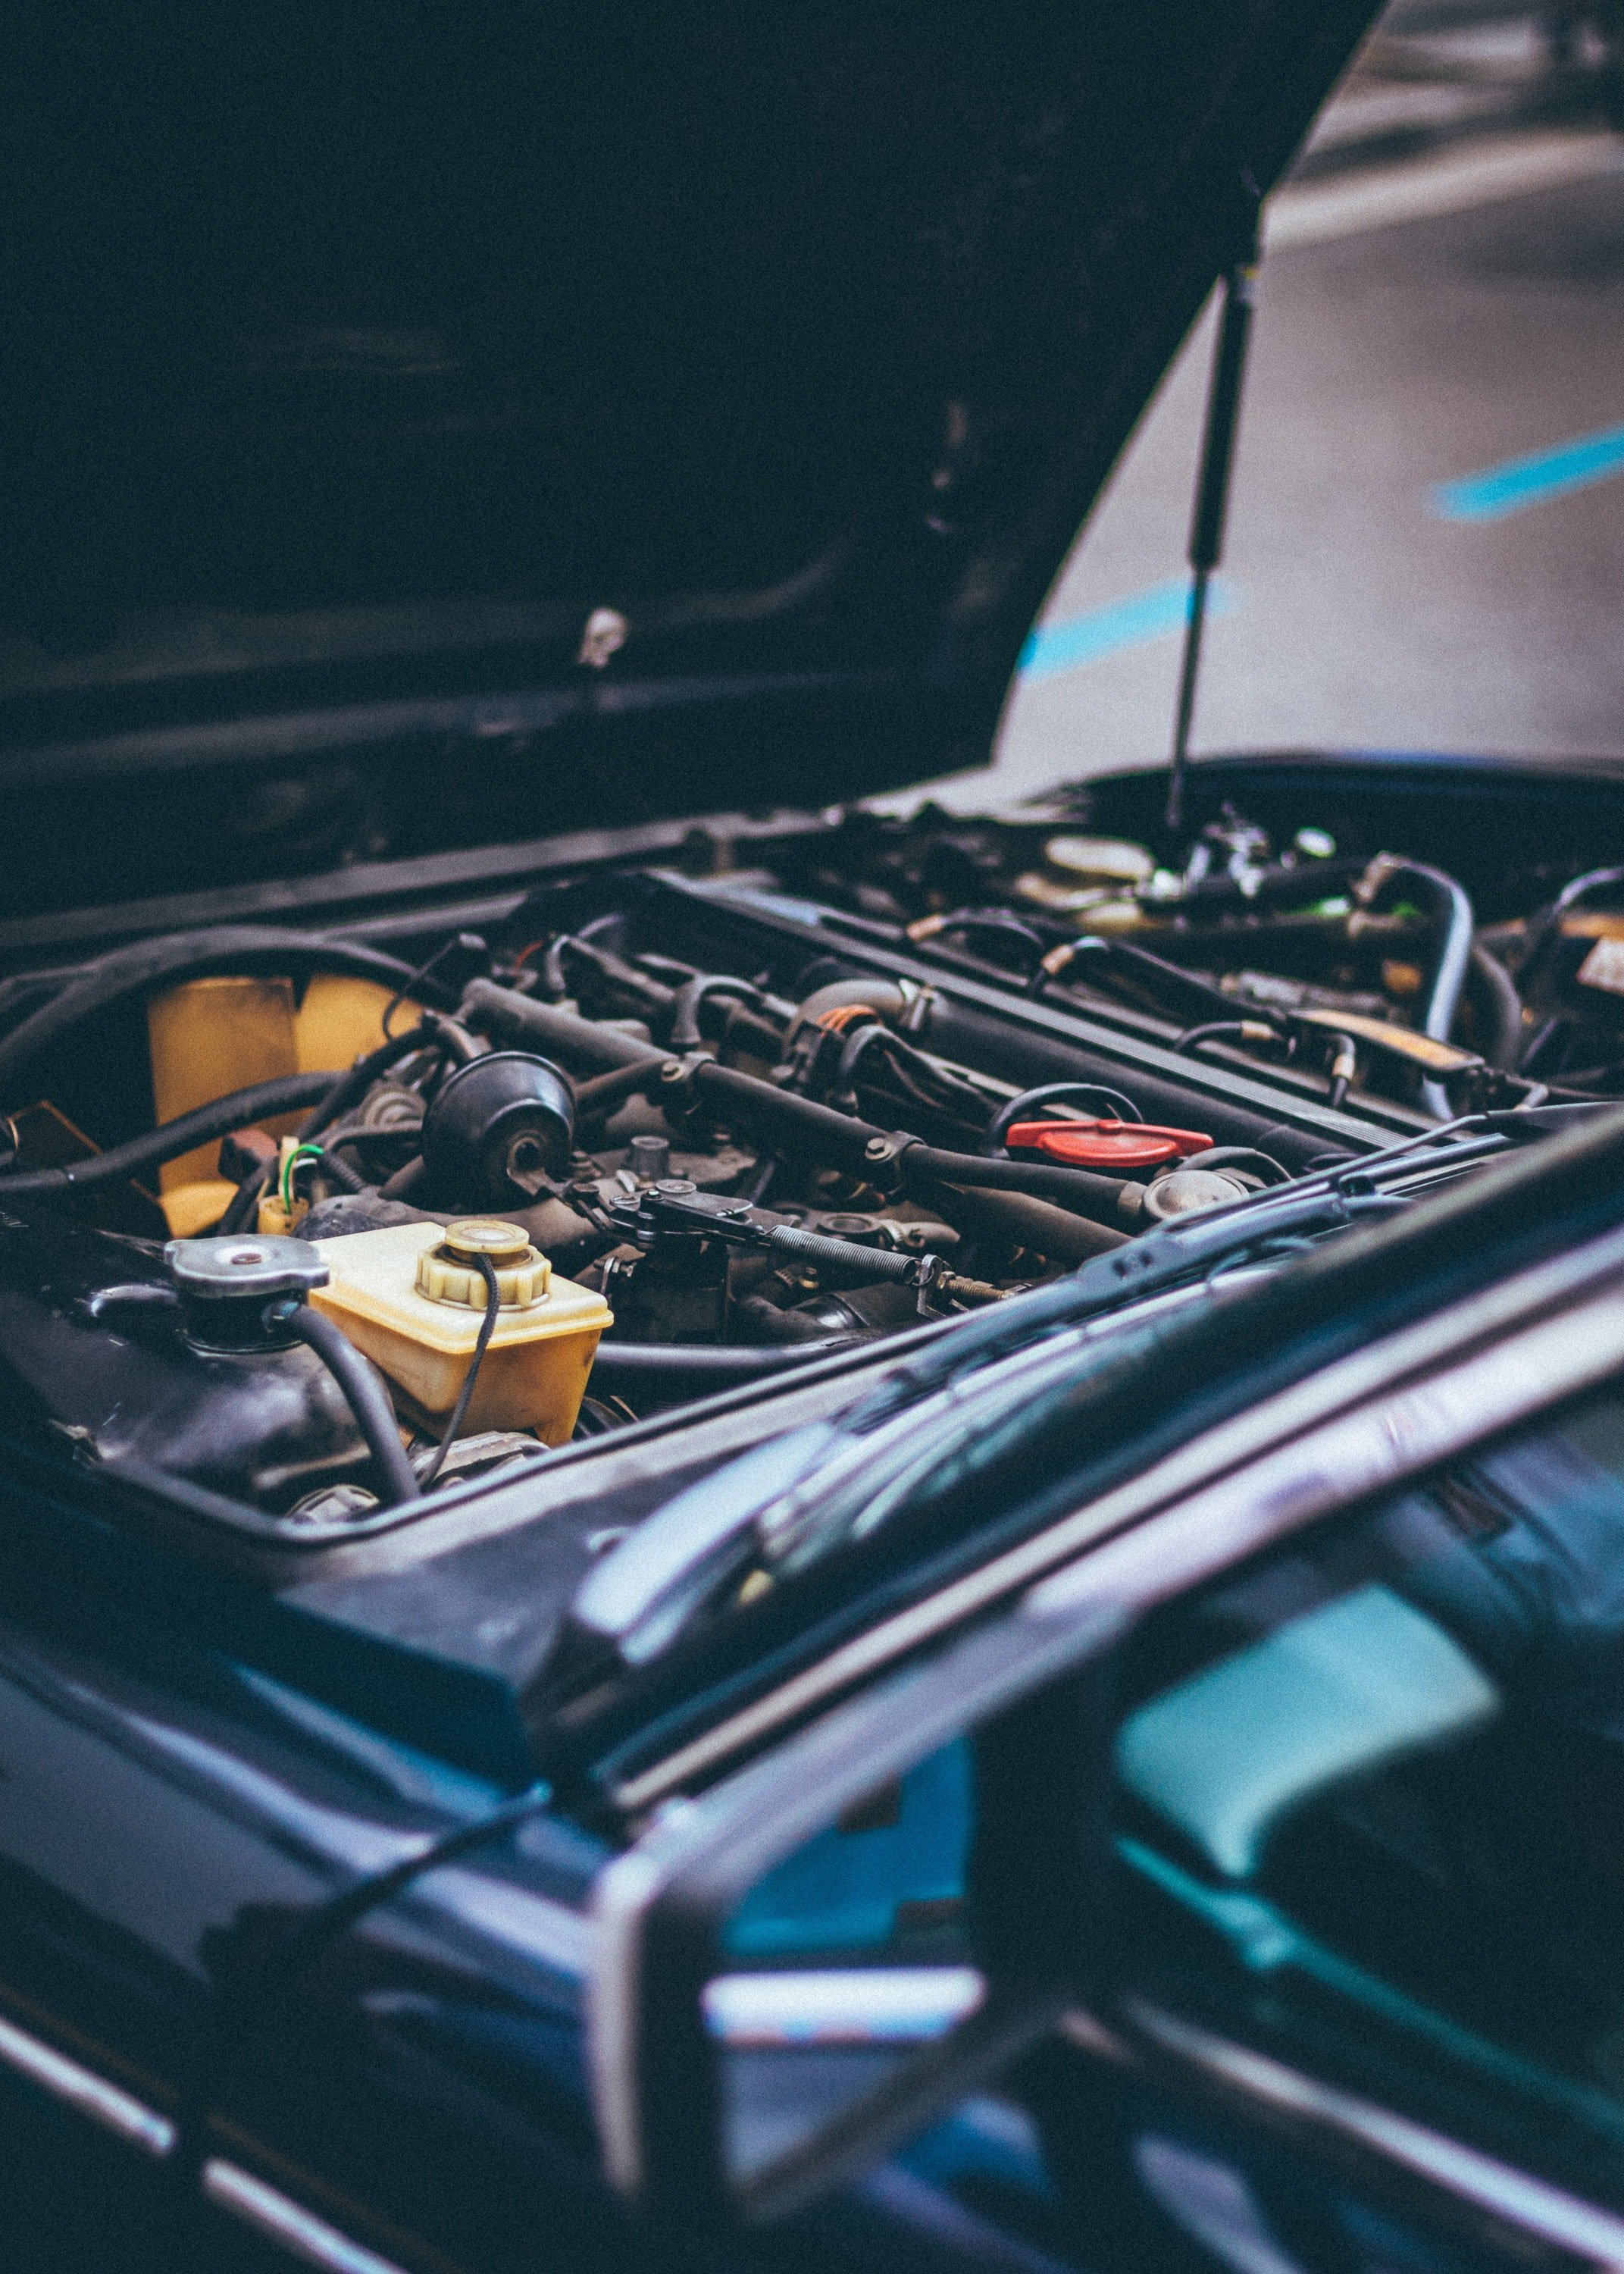 A close-up of a car engine. | Photo: Pexels/George Sultan